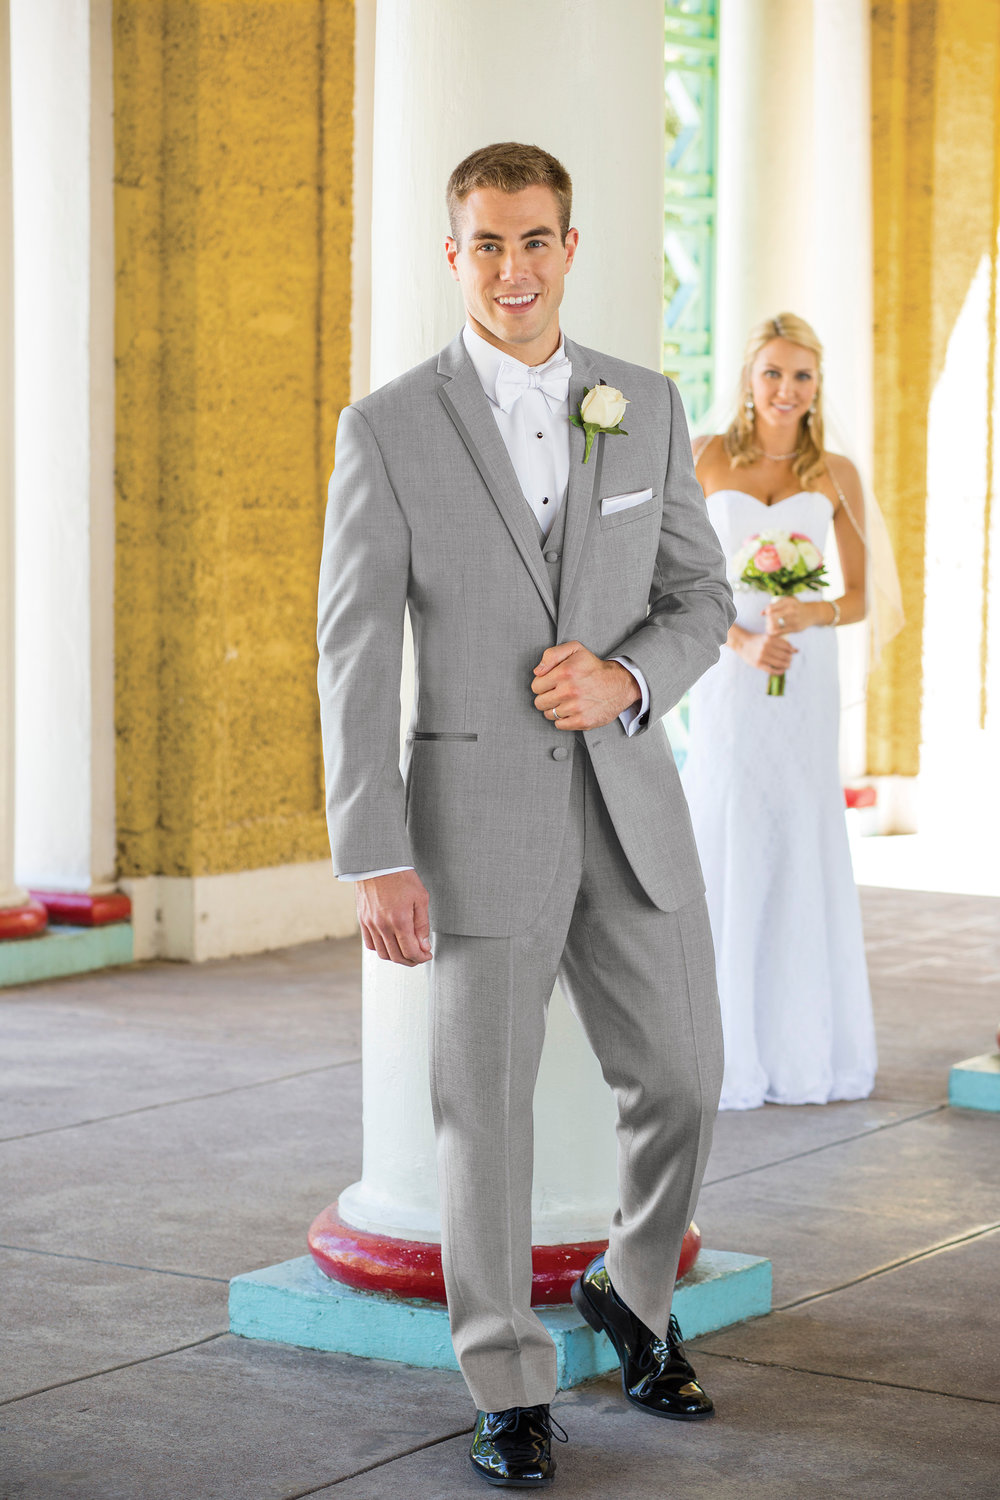 Should You Rent or Buy a Suit for Your Wedding? — Frisco Fun & Formal